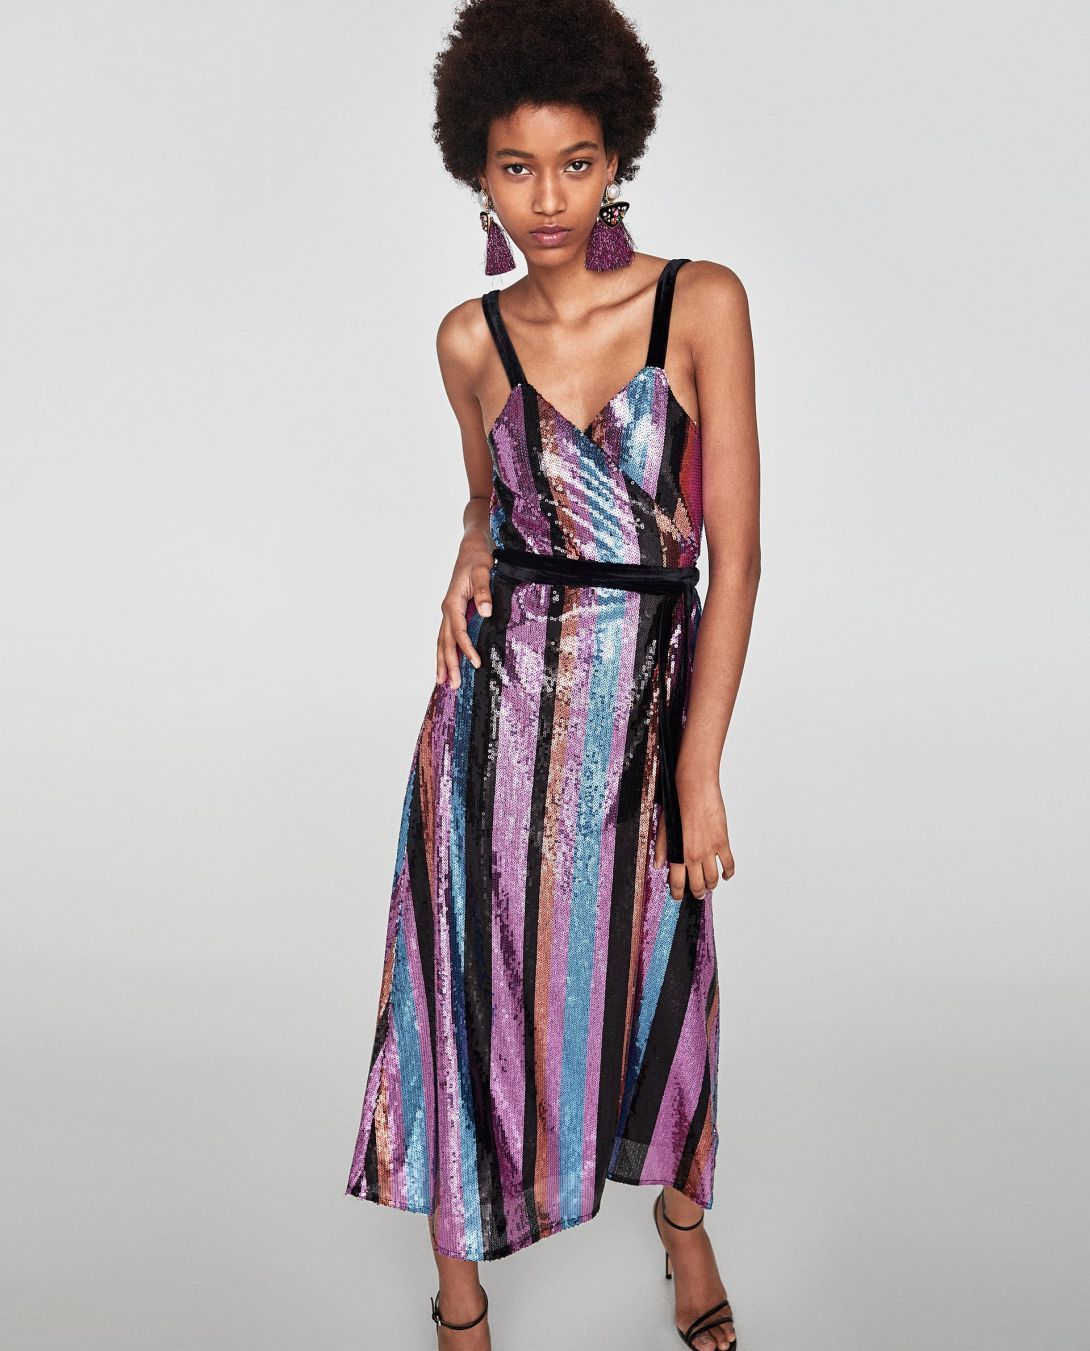 Best Zara Dresses Holiday Outfits For Christmas Party Bagschanel Bagslouisvuitton Bagsgucci Bagscoach Hand Holiday Outfits Holiday Dress Outfit Dresses